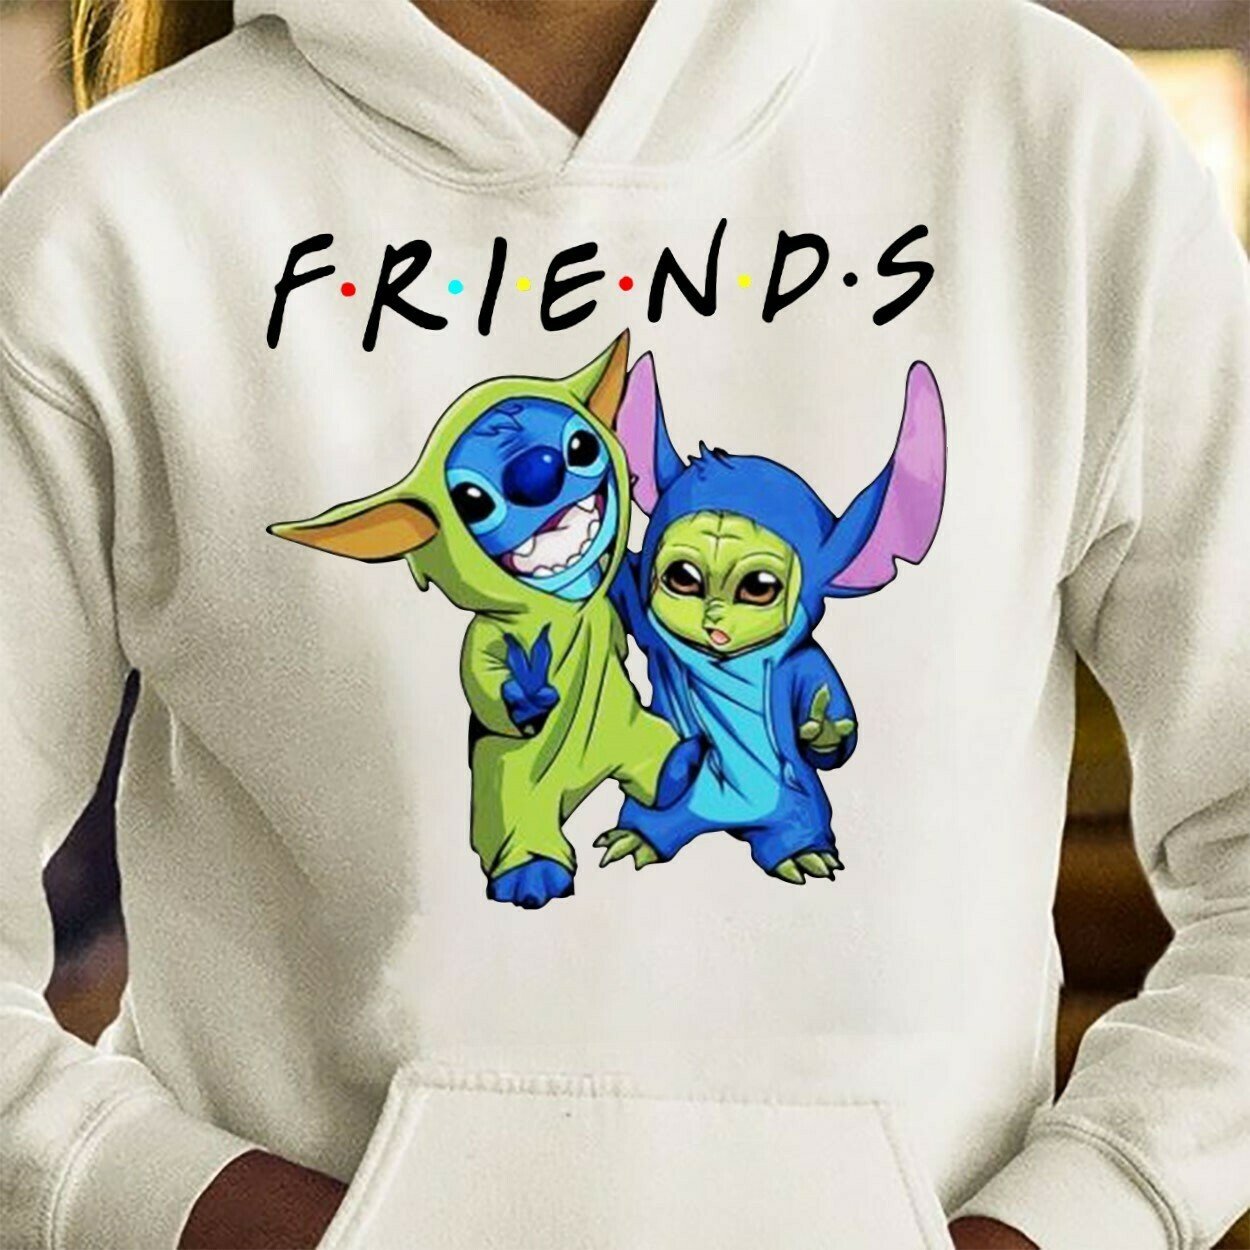 Baby Stitch and Baby Yoda Friends,Star Wars The Good The Droid The Baby Ok Boomer Baby Yoda and stich Snack time Catching t shirt Long Sleeve Sweatshirt Hoodie Jolly Family Gifts